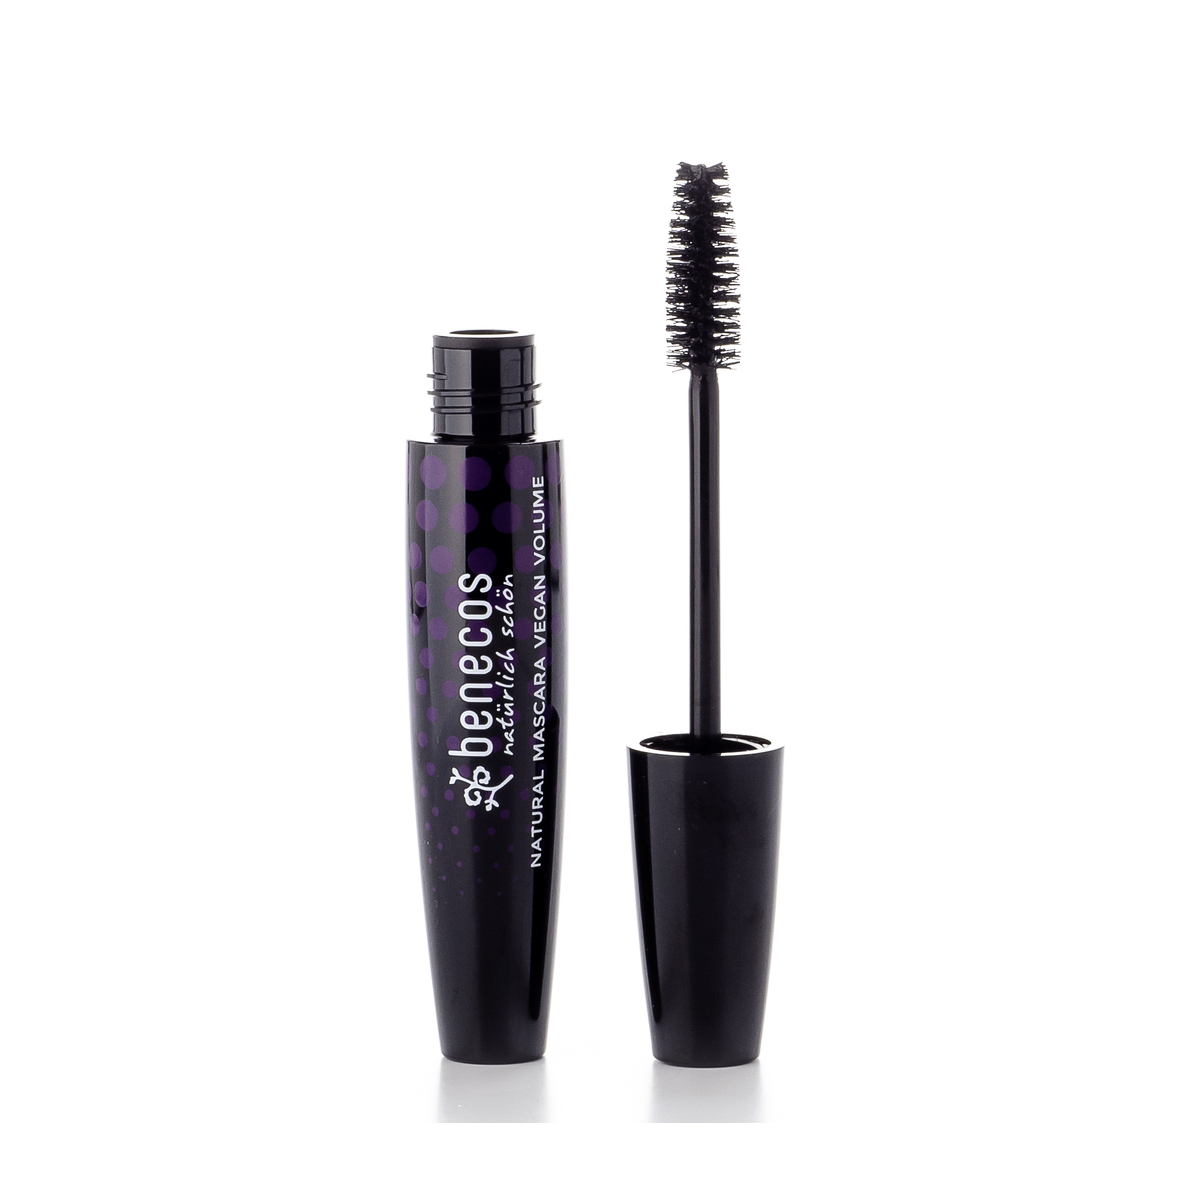 Mascara Vegan Volume magic black Stück 10 ml - benecos